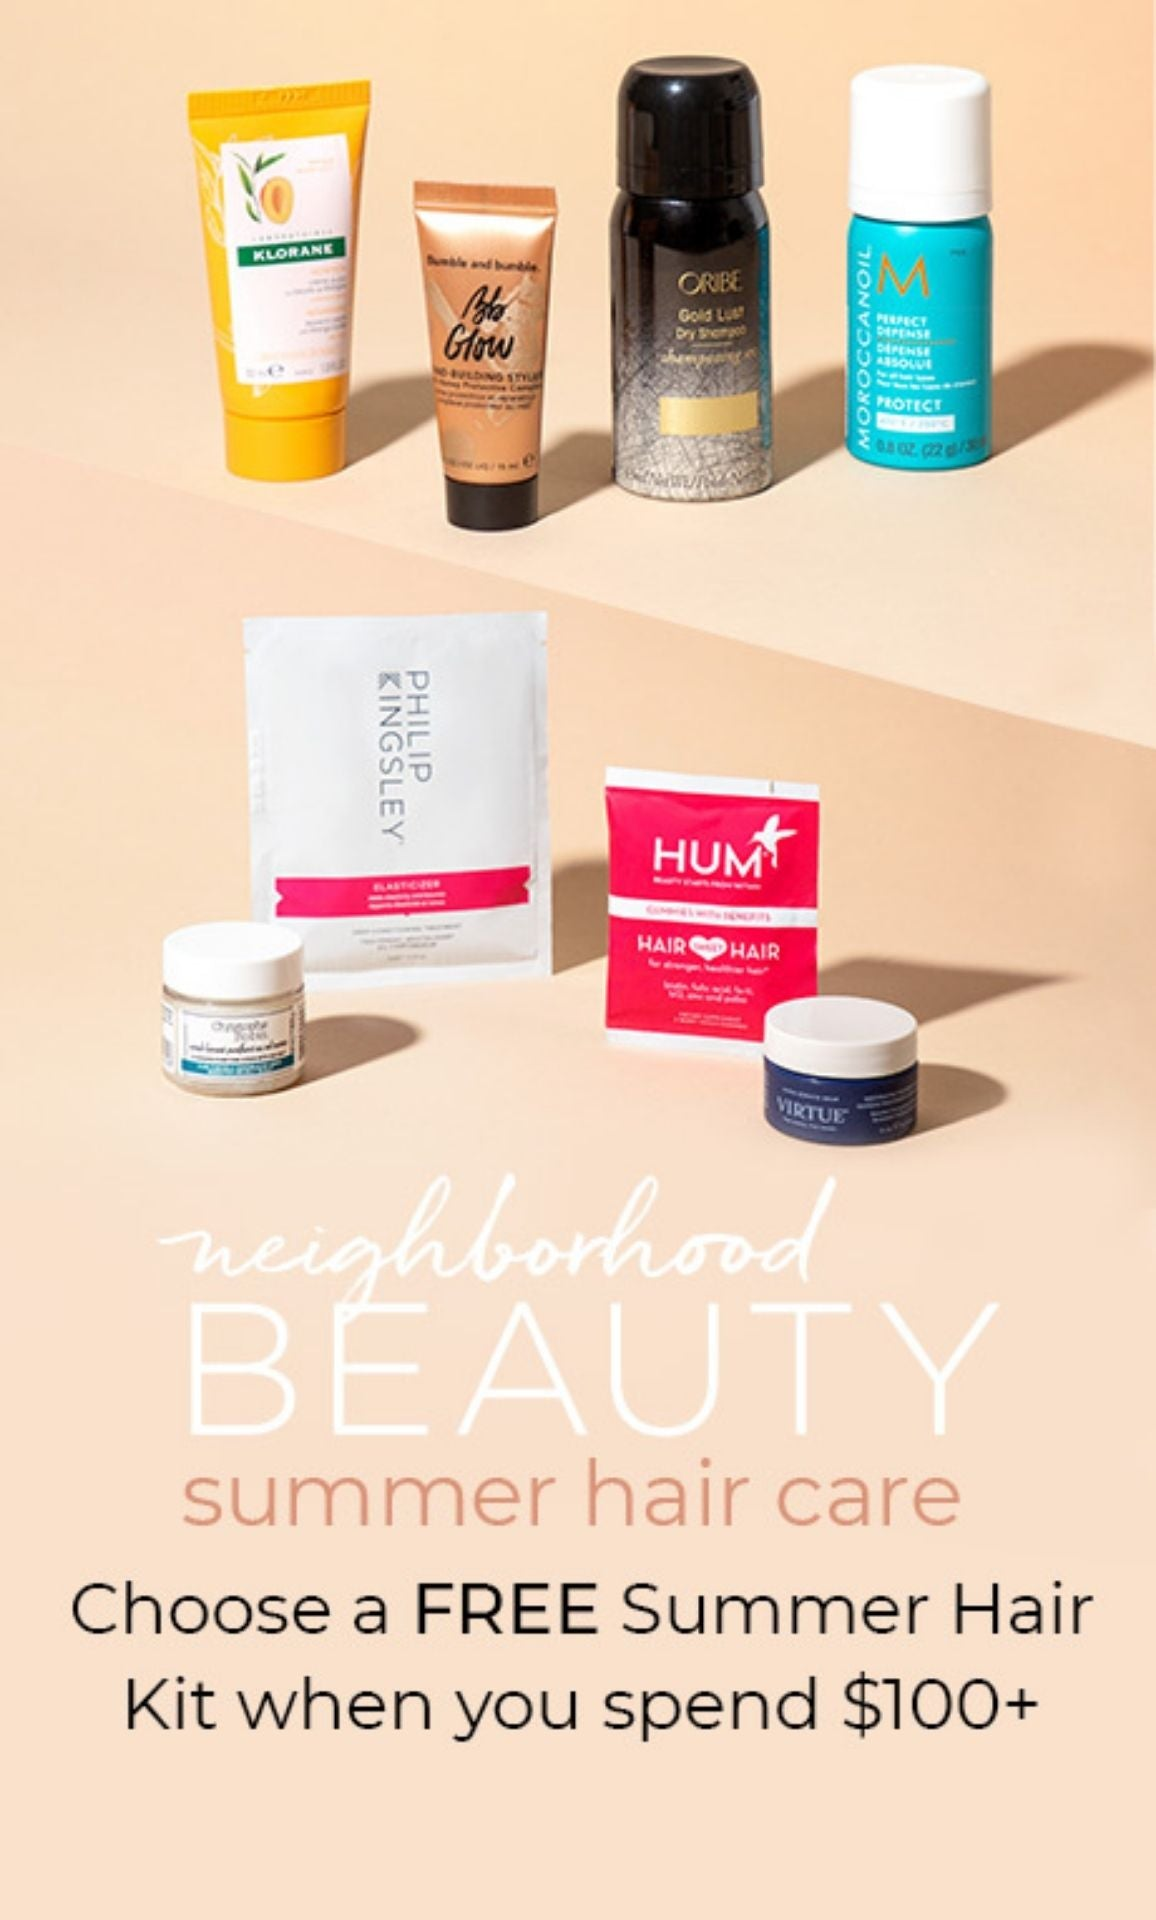 Neighborhood Beauty Hair Kits